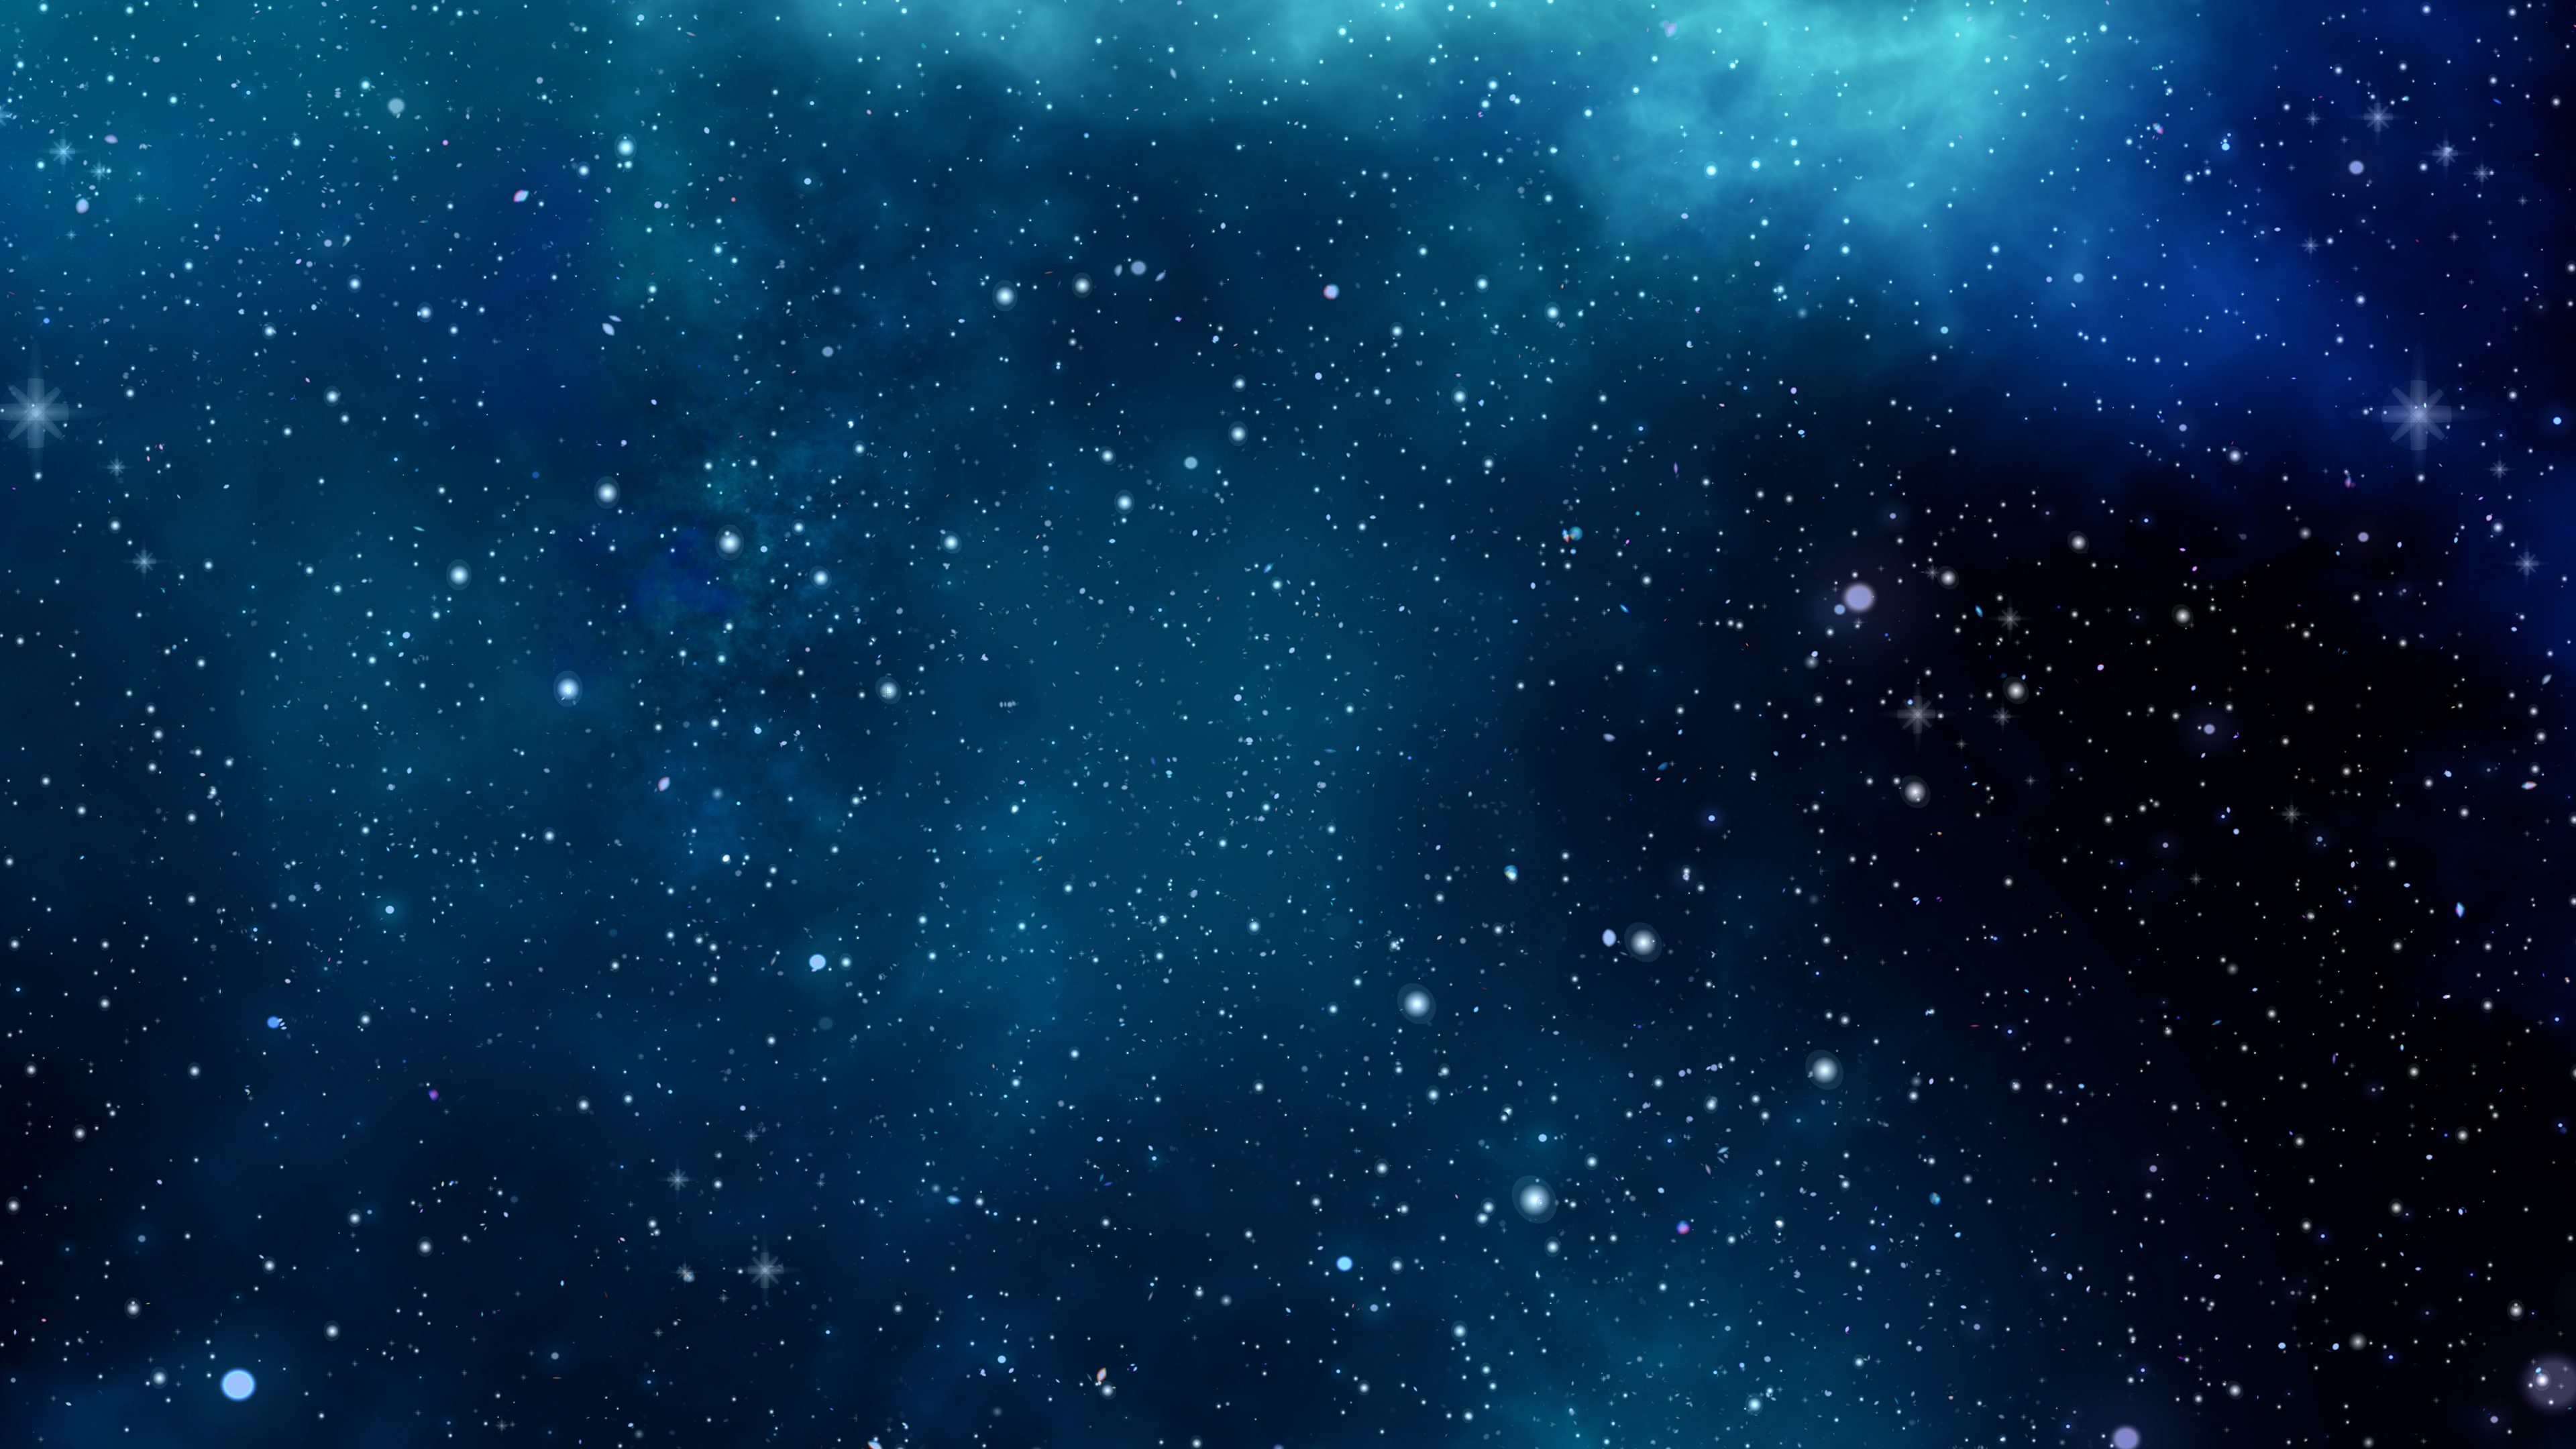 download free hd blue space desktop wallpaper in 4k 0065